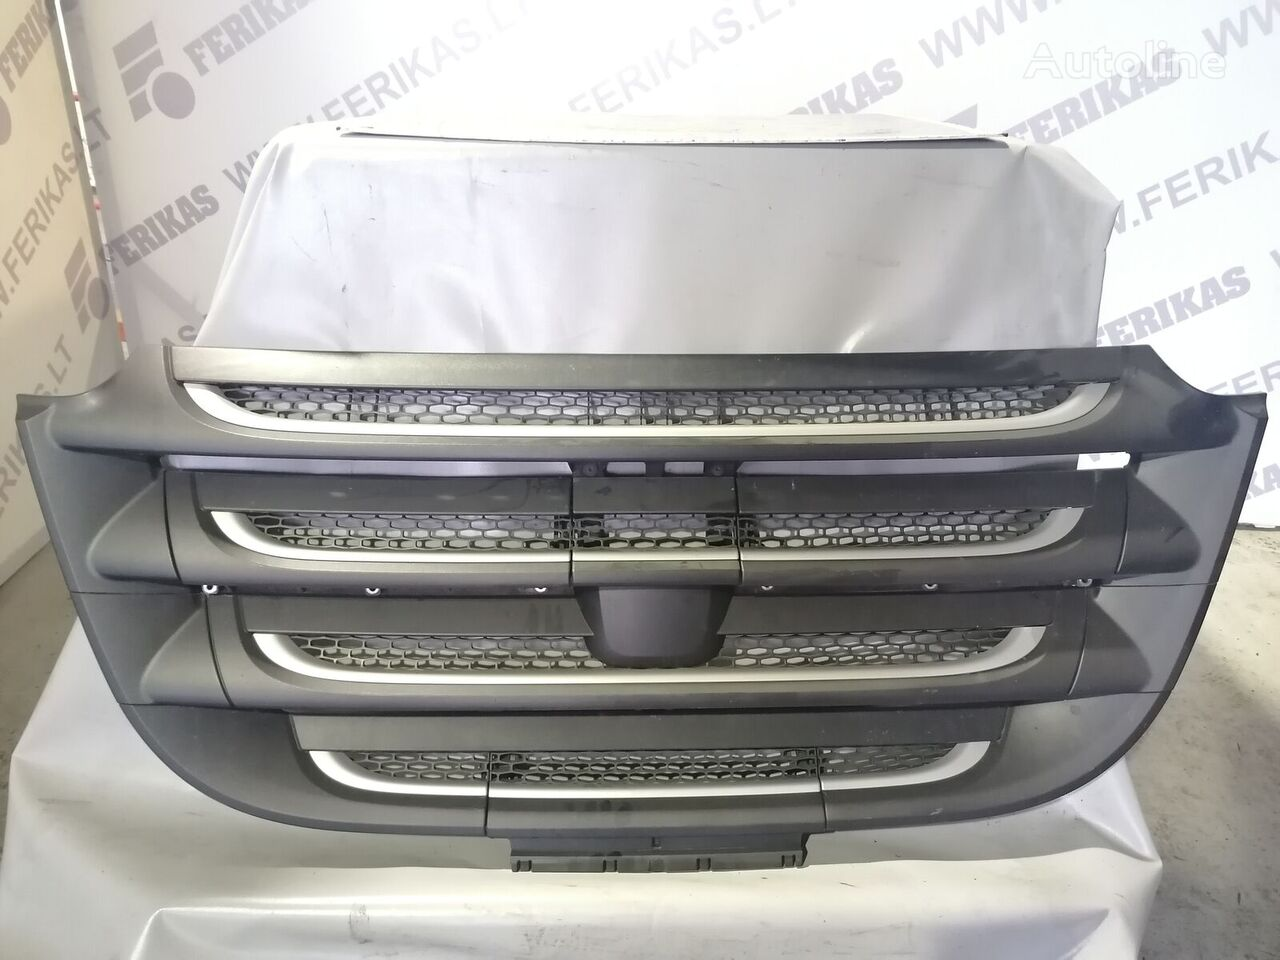 DAF radiator grille for DAF XF106 tractor unit